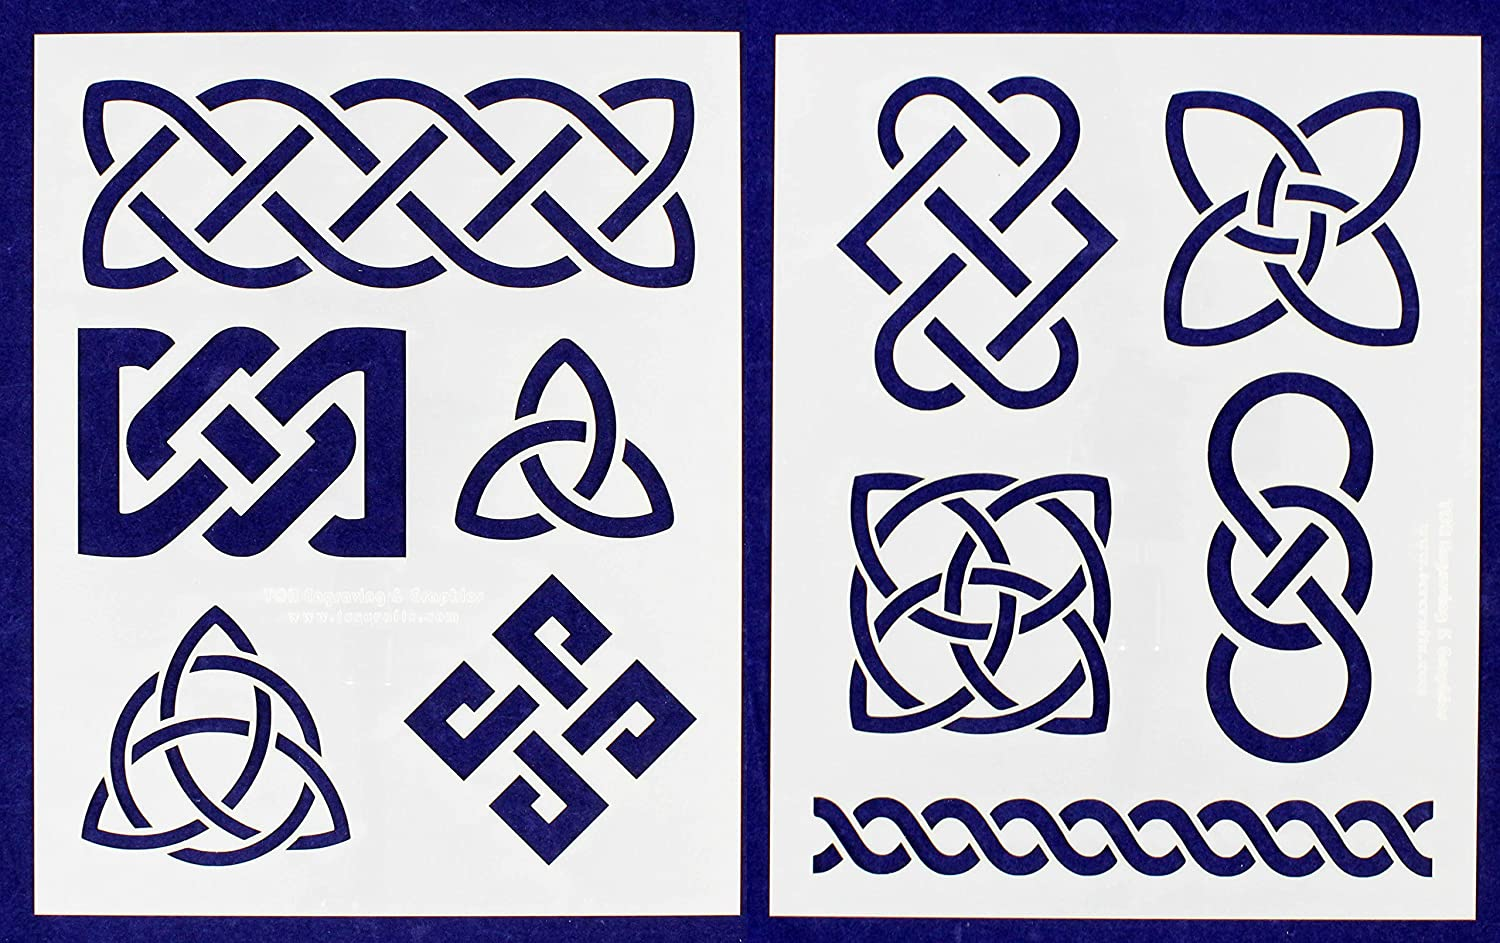 Celtic Knot Stencils 8 X 10 Mylar 2 Pieces of 14 Mil - Painting /Crafts/ Templates TCR Engraving & Graphics